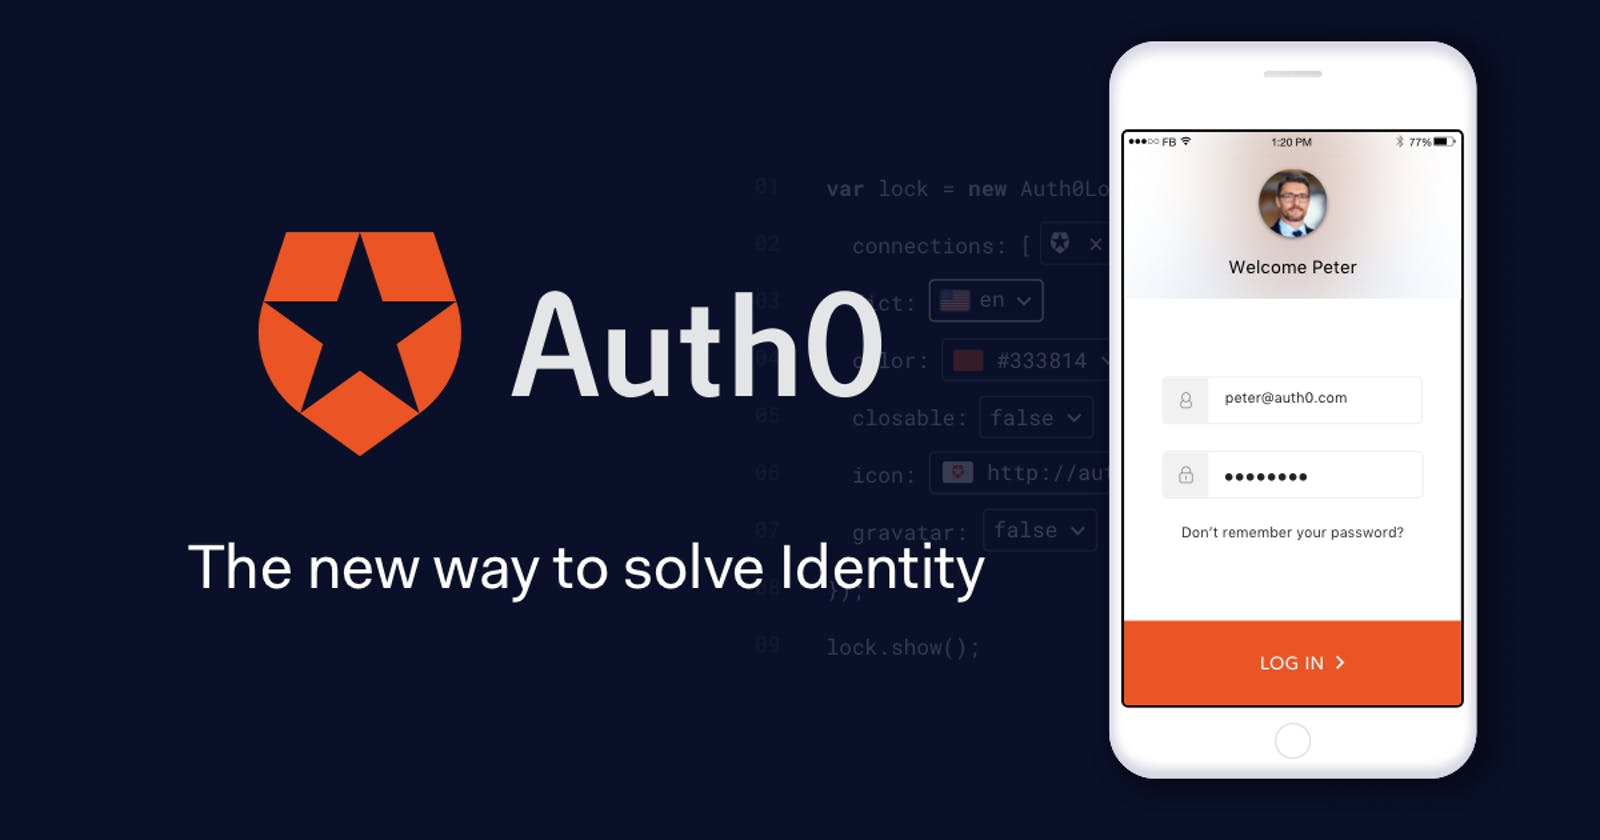 How to Add a GitHub Social Connection in Auth0